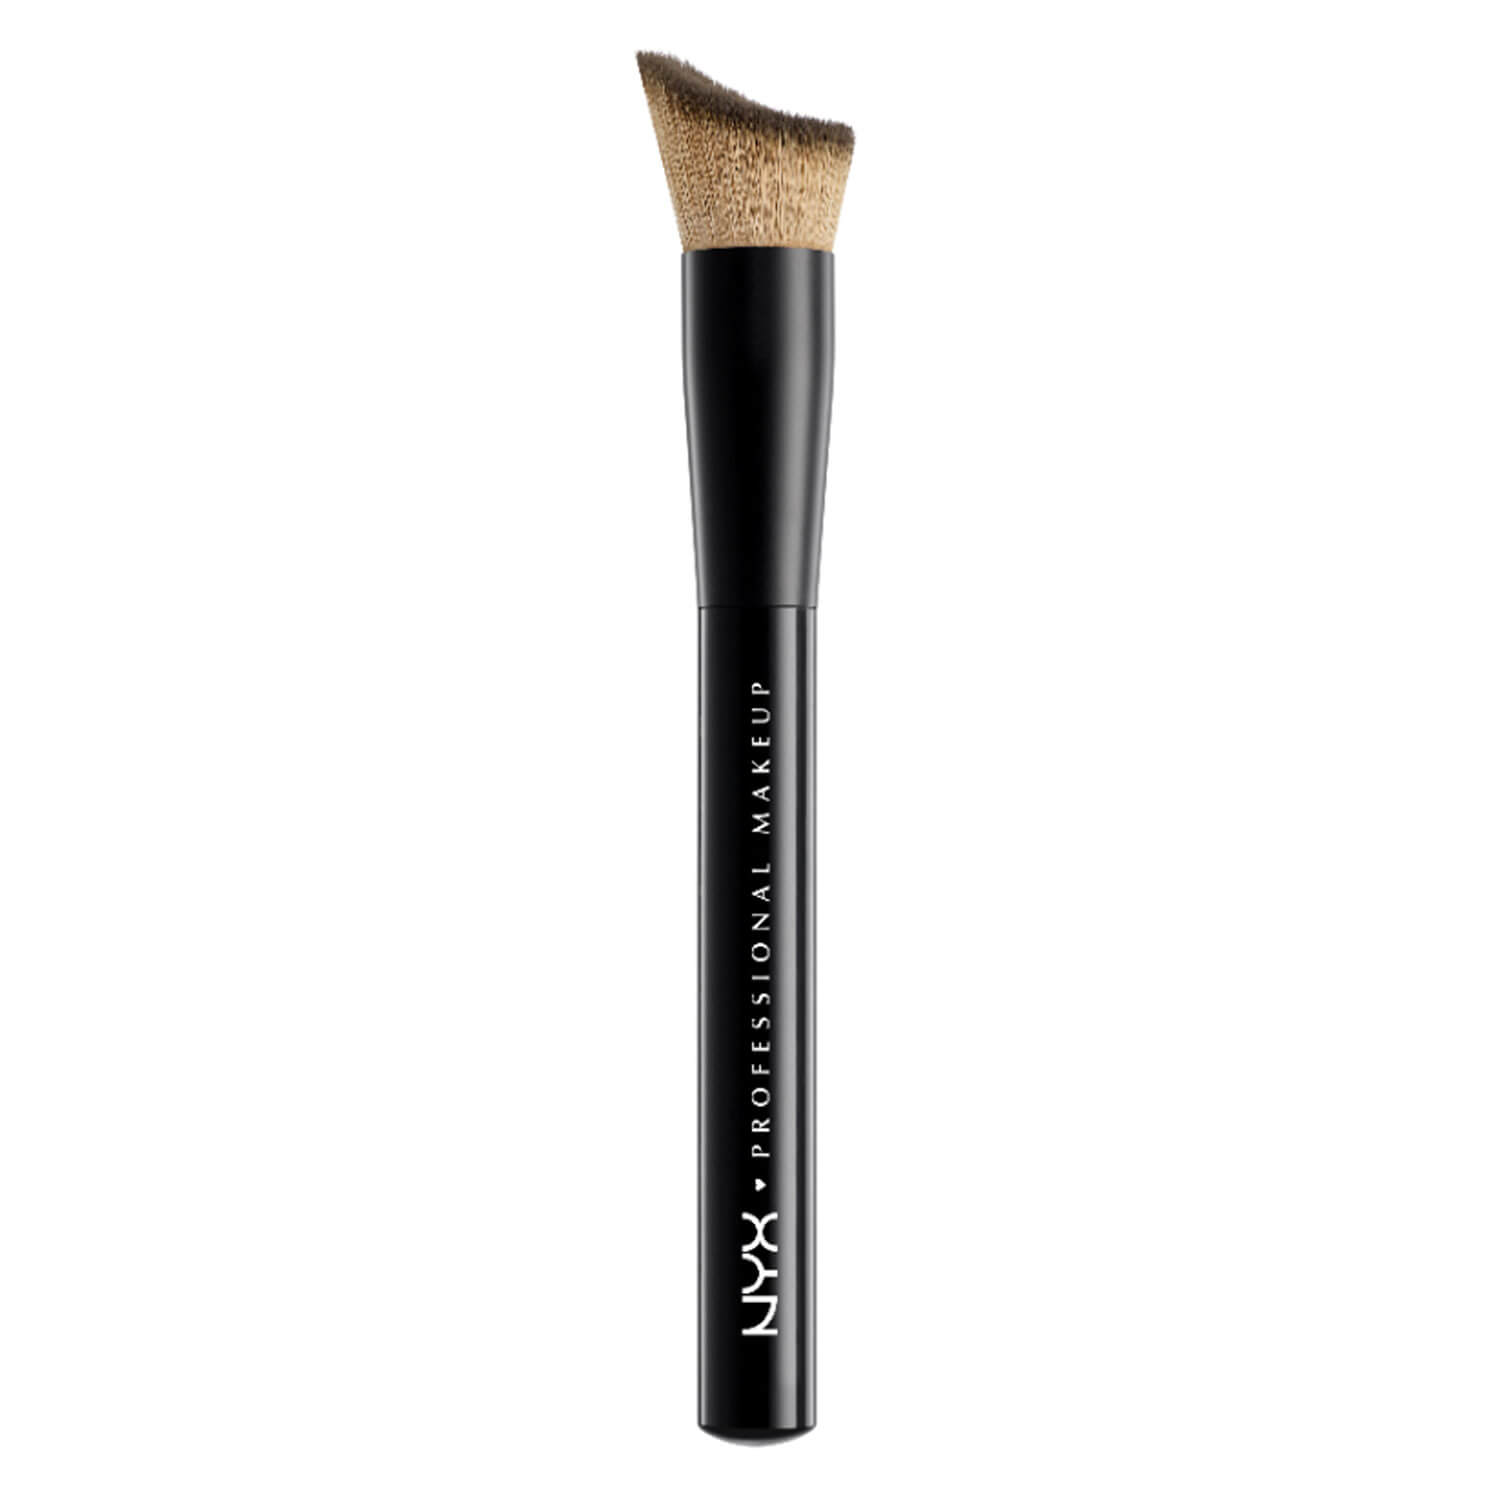 Pro Brush - Total Control Drop Foundation Brush